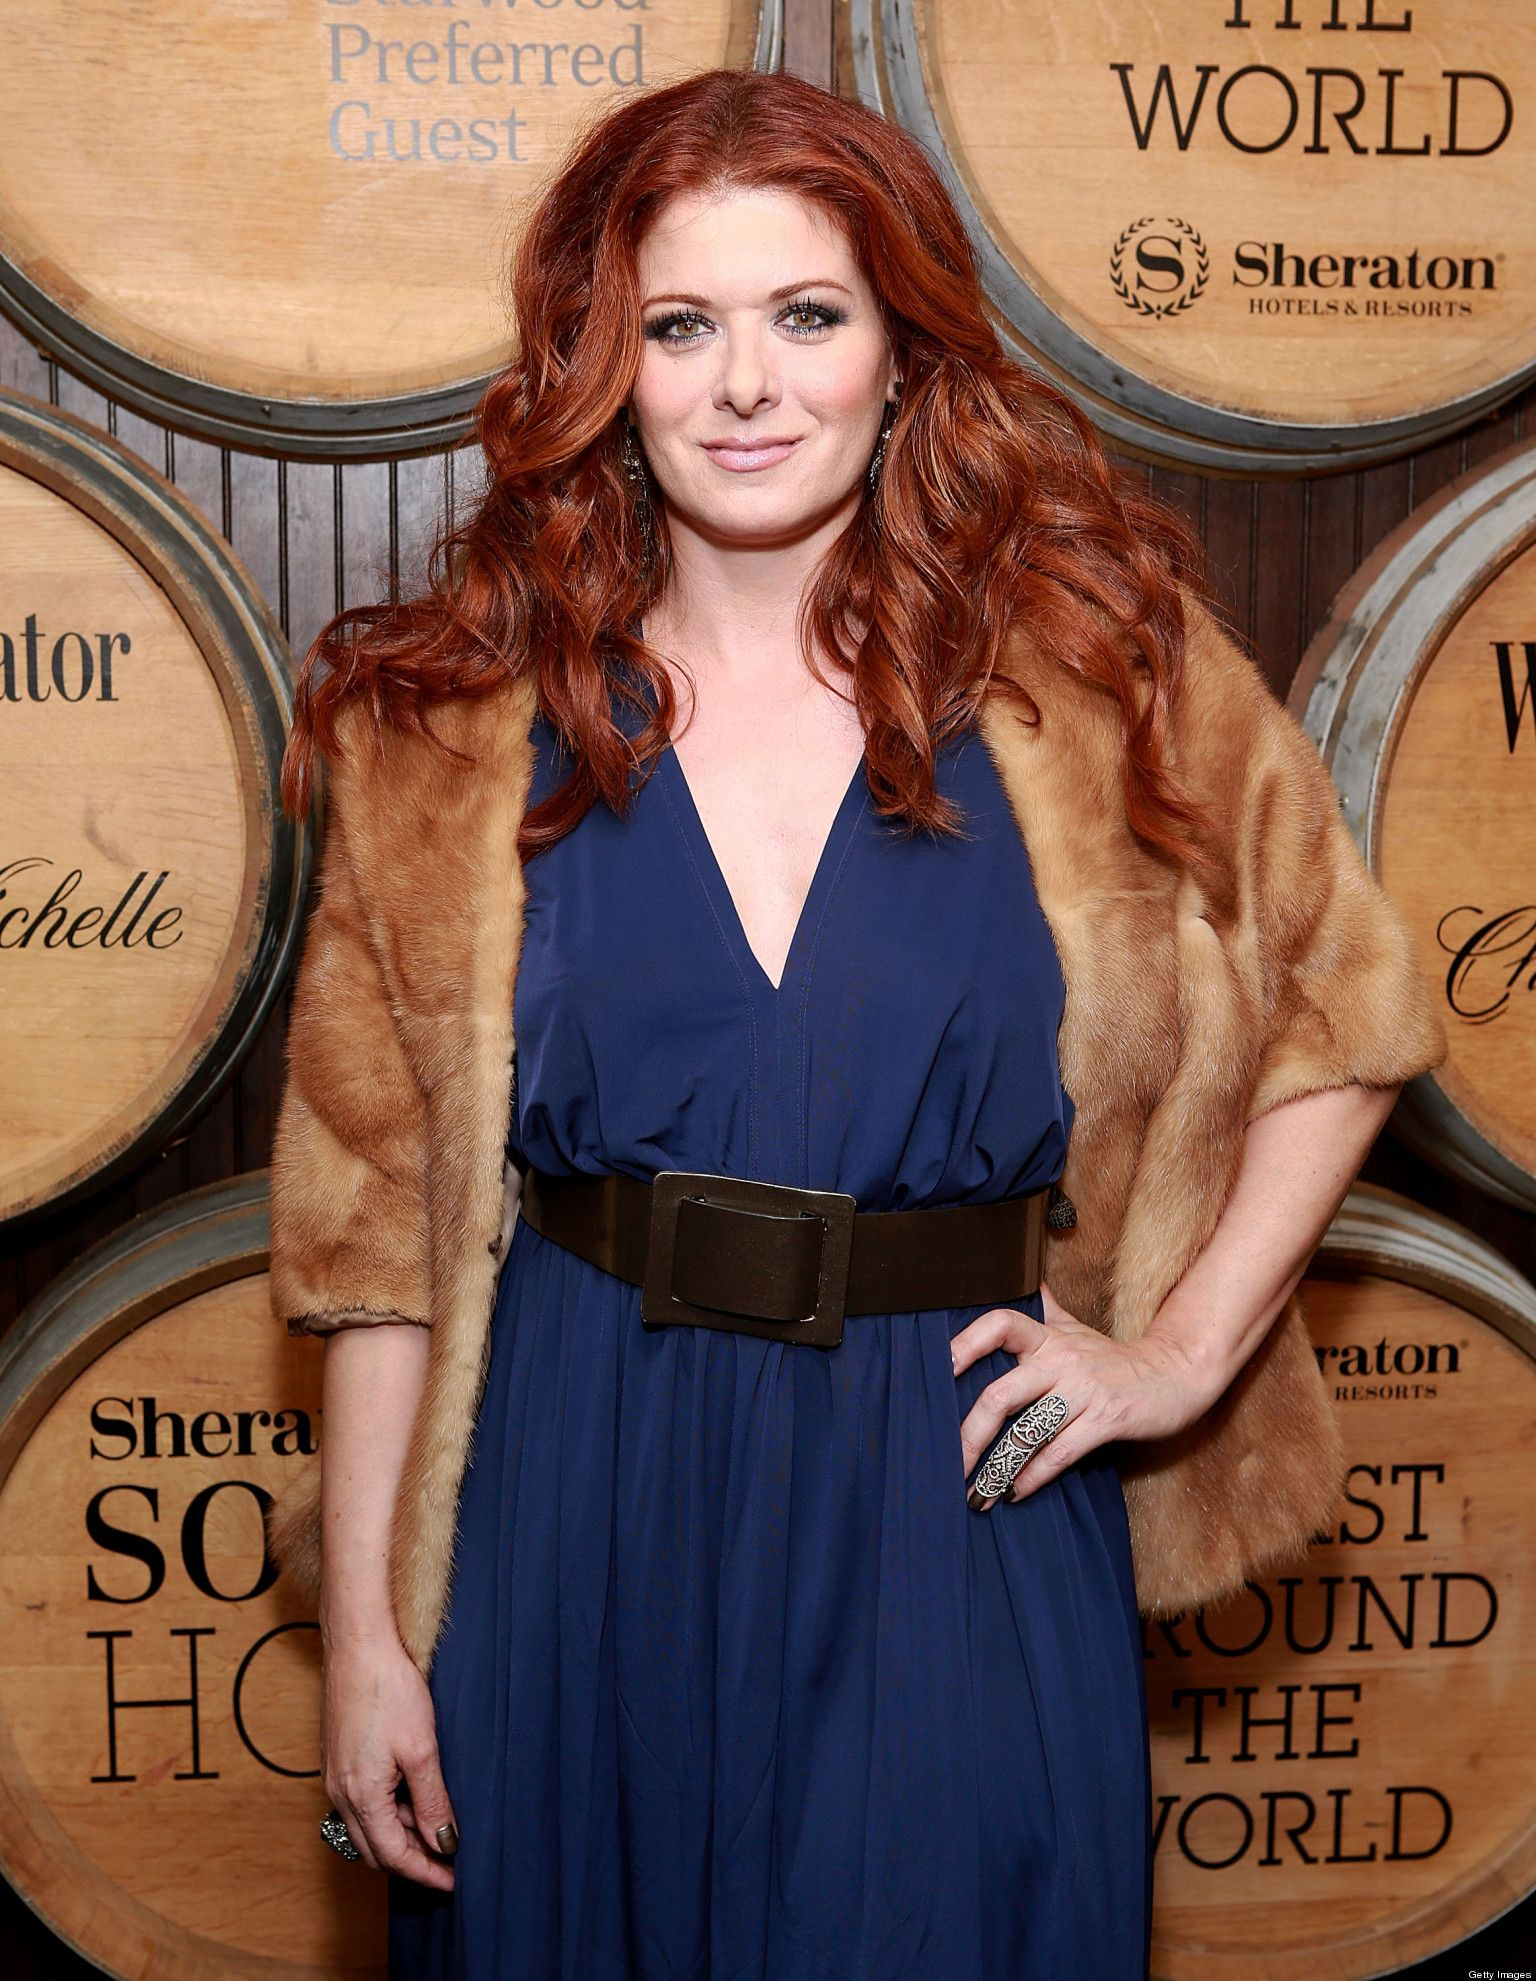 Debra Messing Braless Ele debra messing - google search   my queens (my wives) polygamists